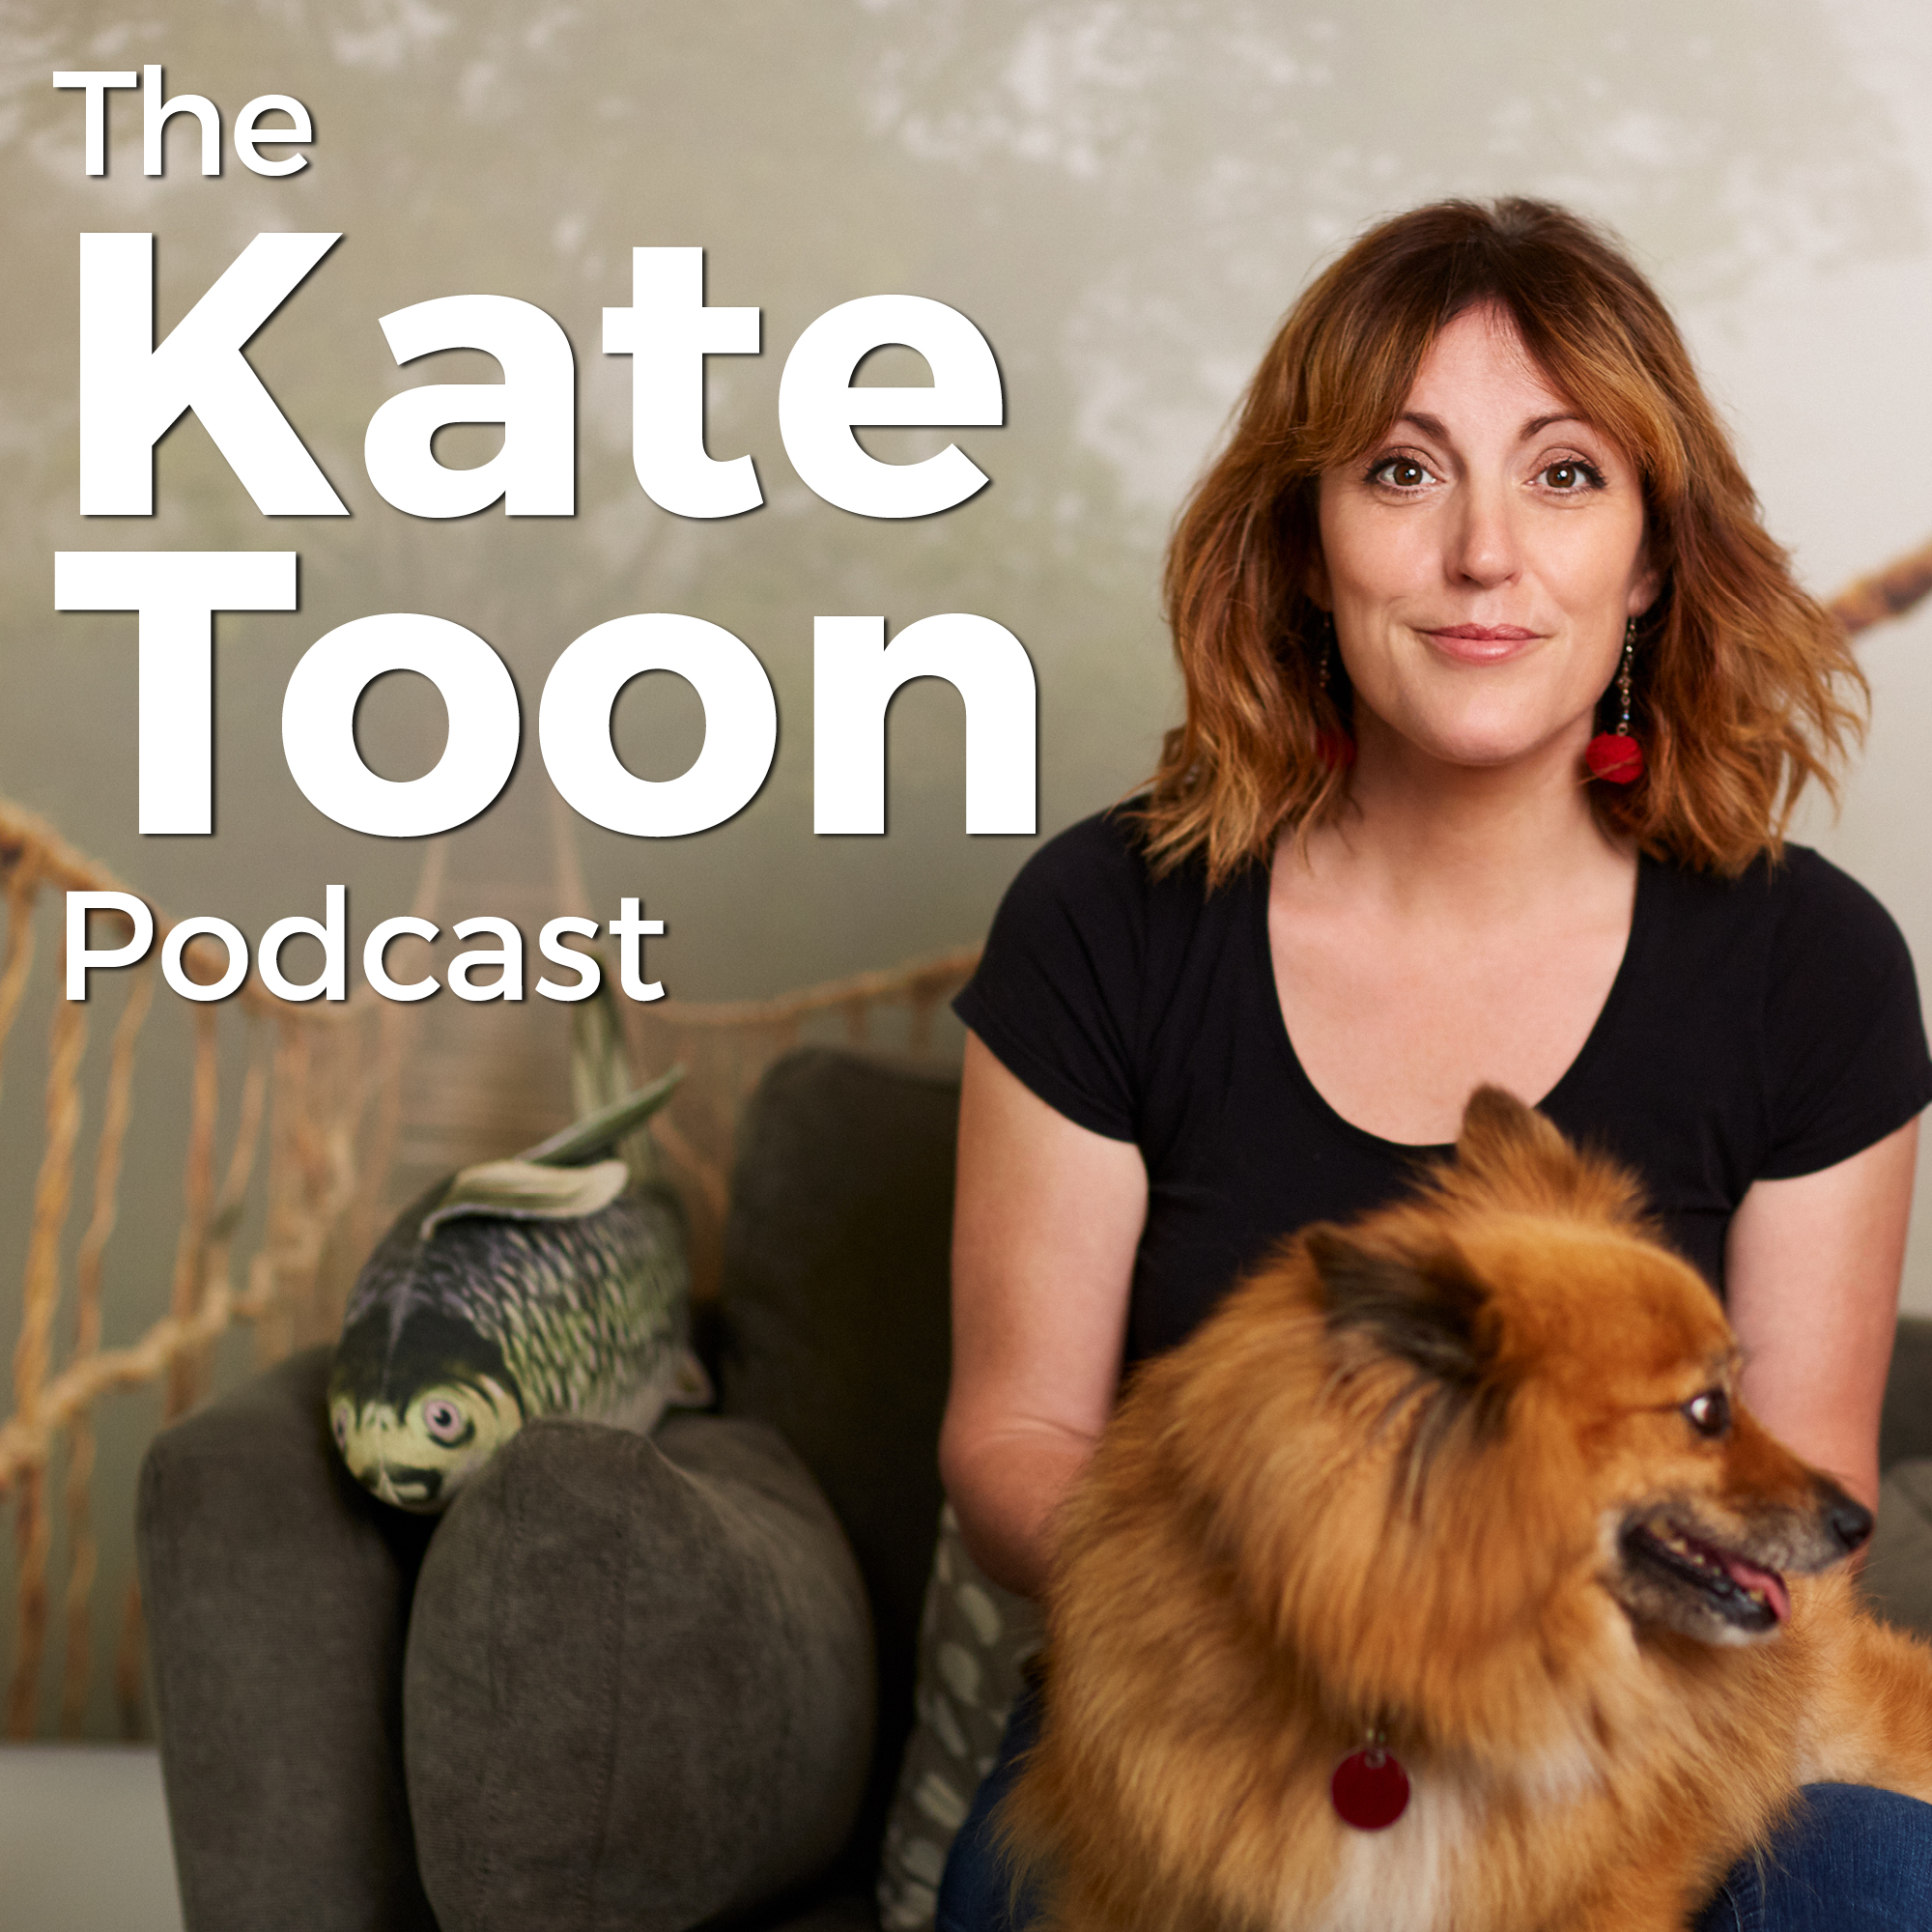 The Kate Toon Podcast show art